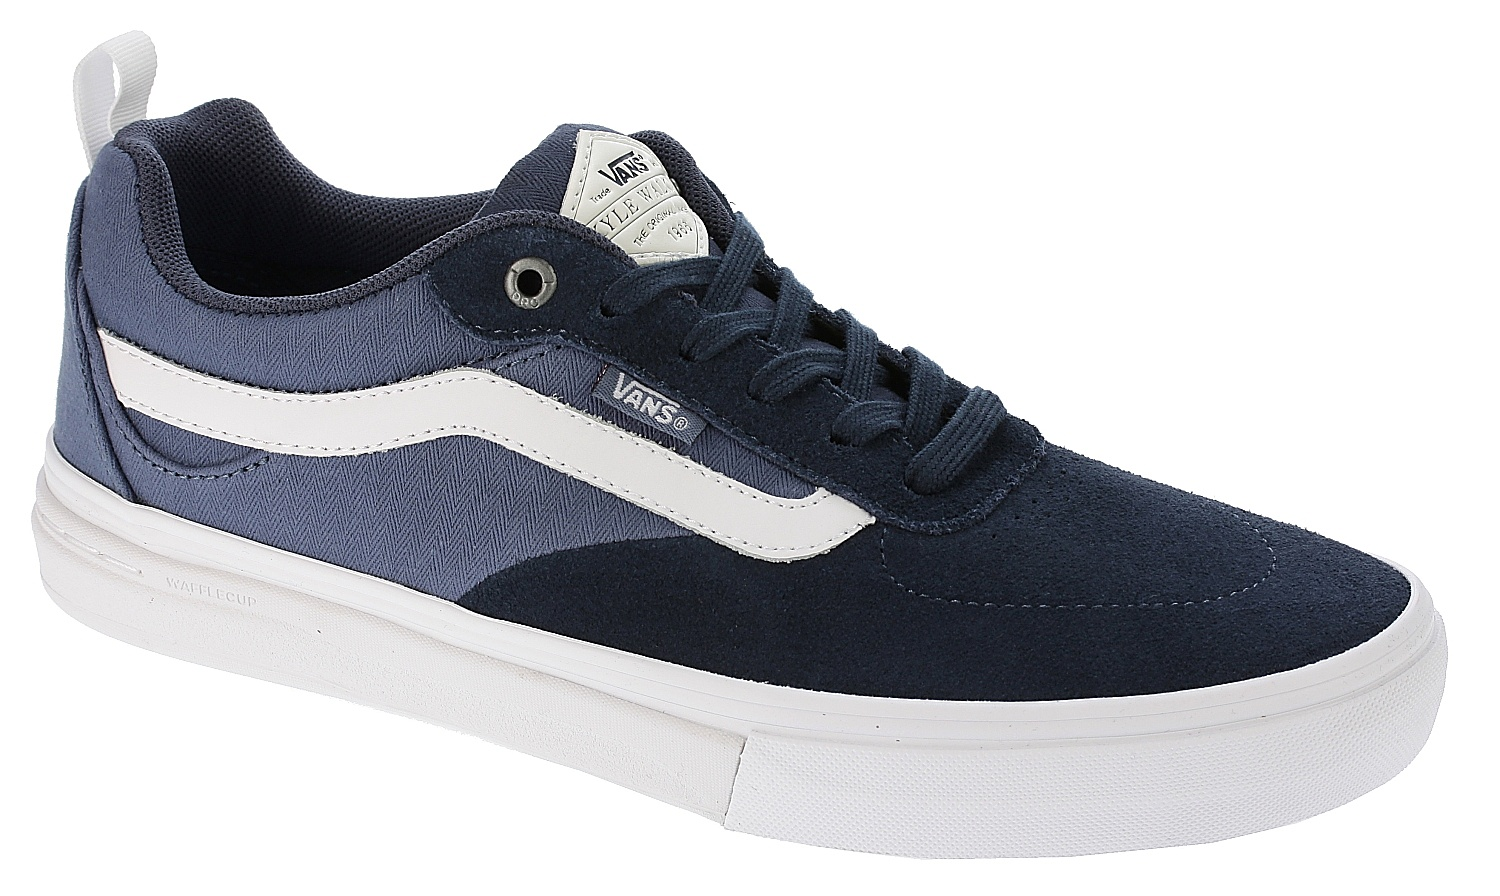 ec94f9ef4133 shoes Vans Kyle Walker Pro - Dress Blues Vintage Indigo White - Snowboard  shop